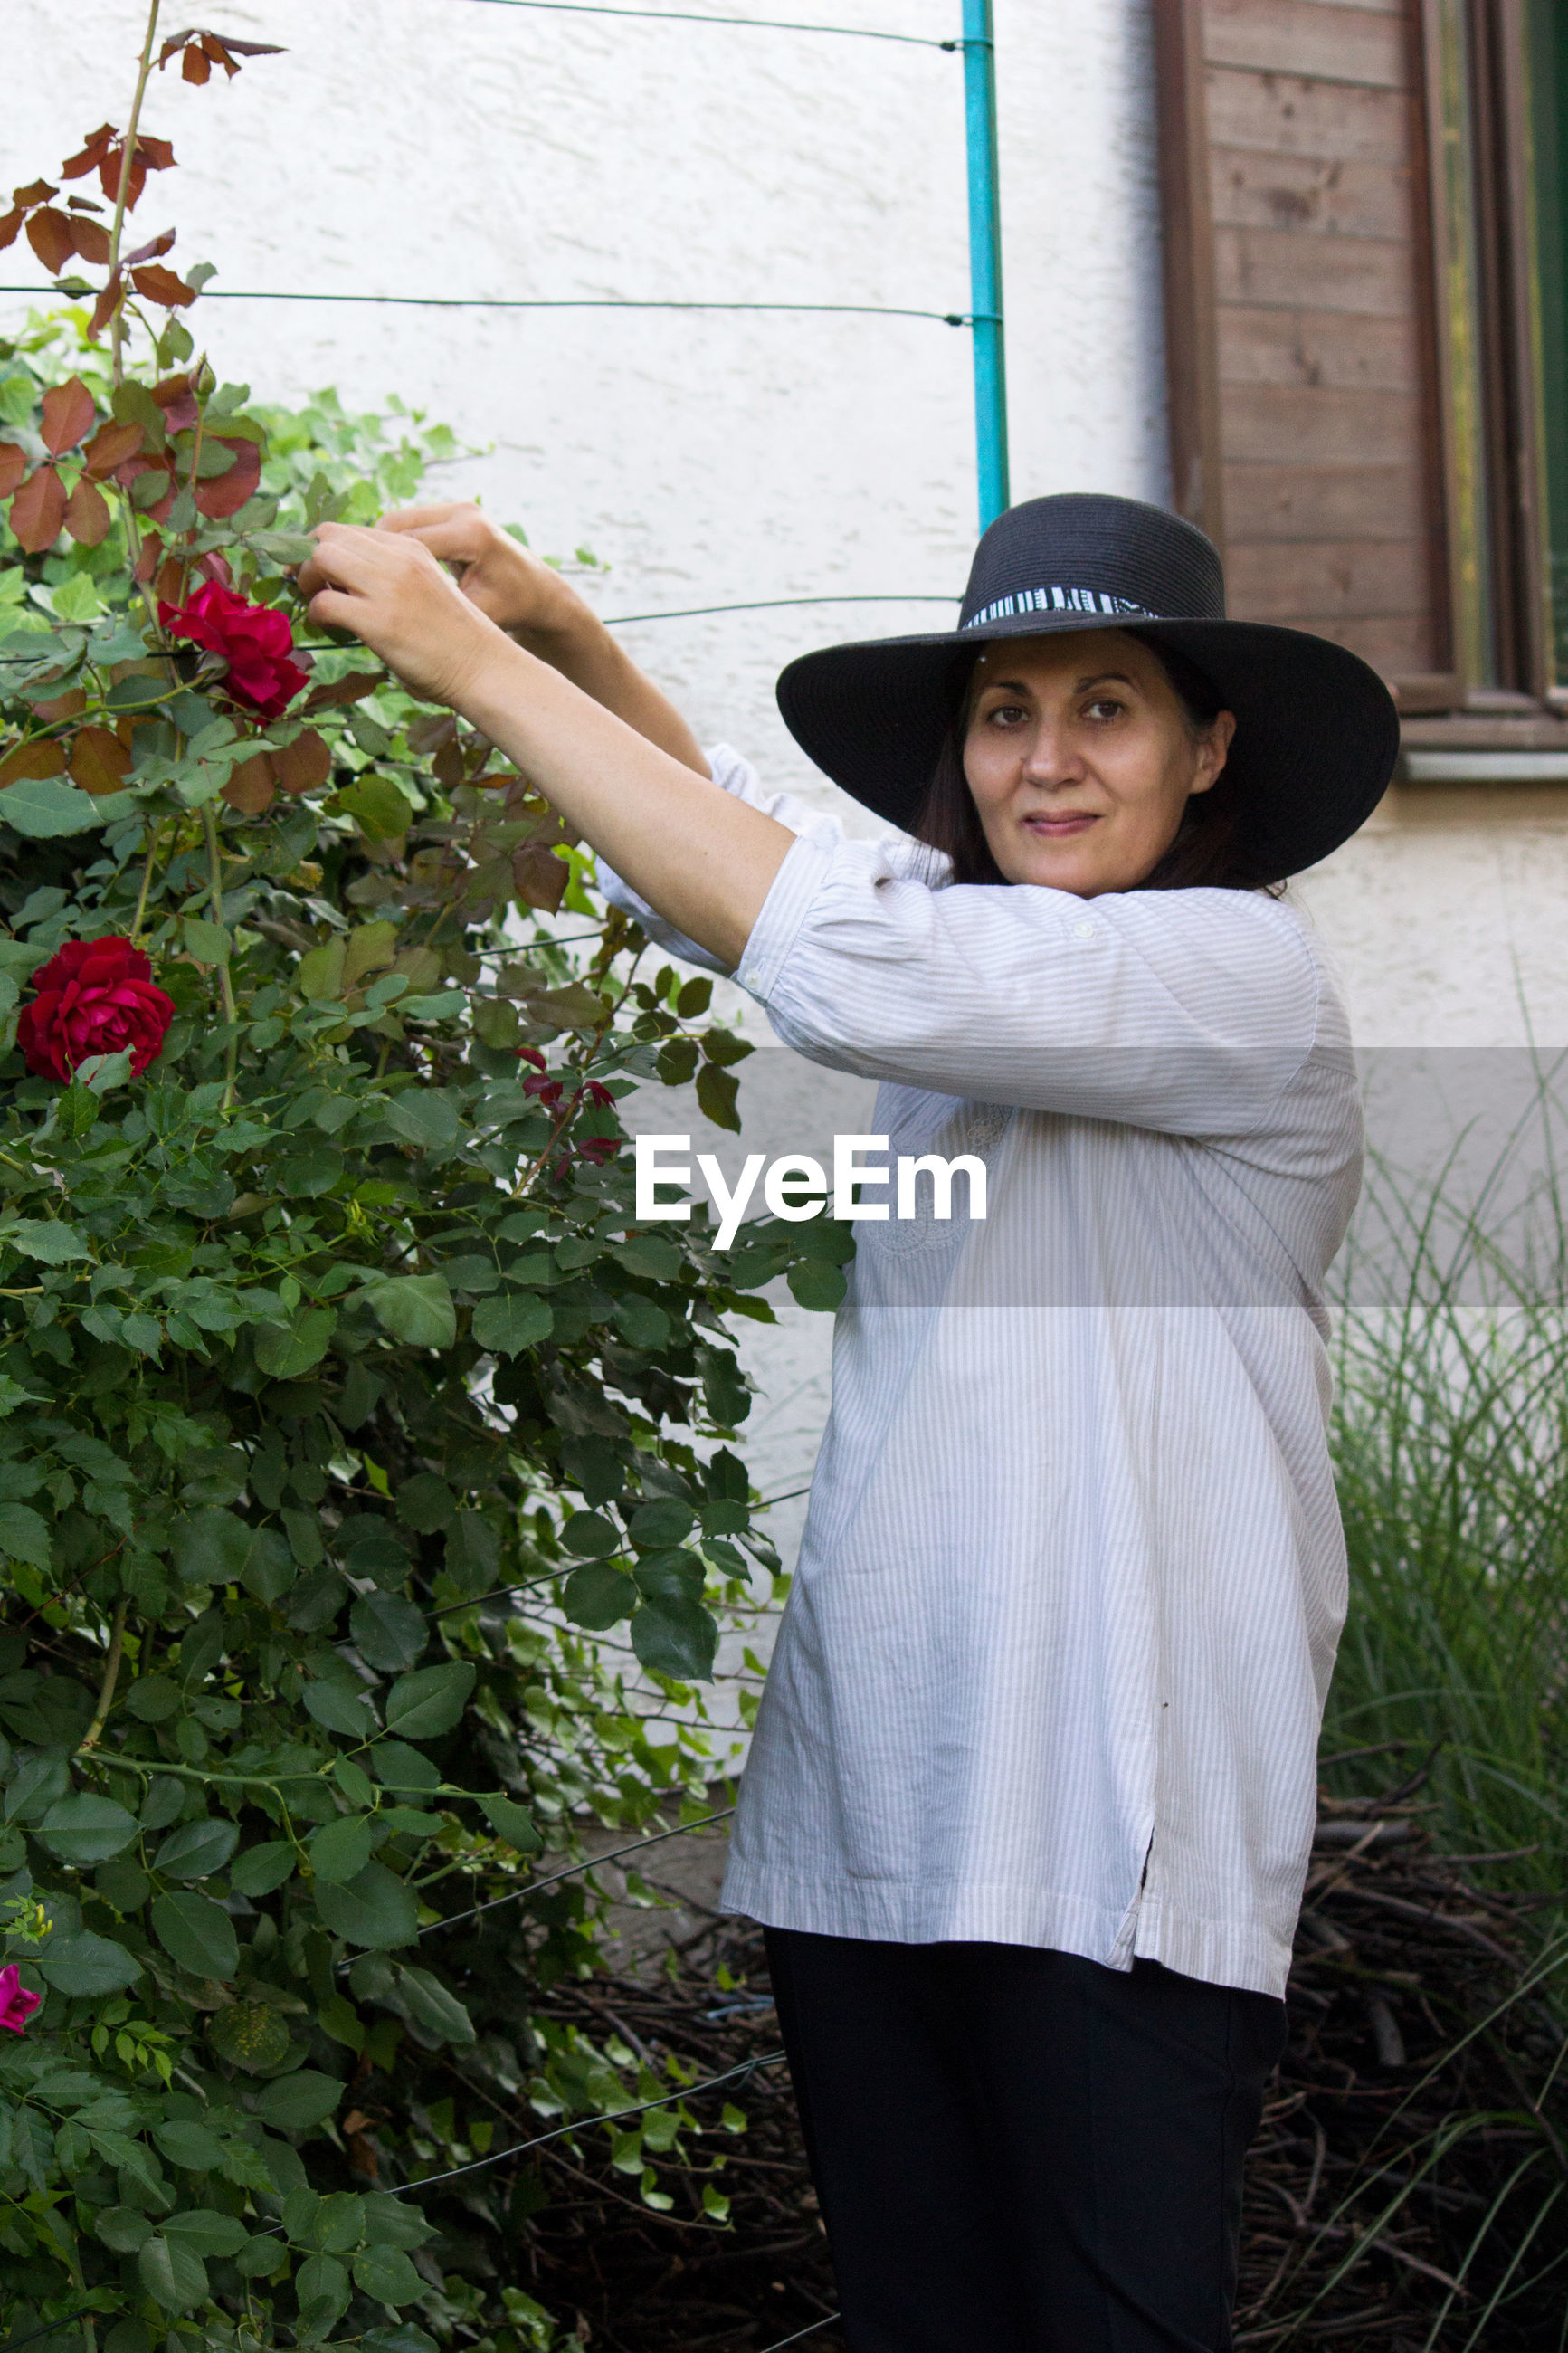 Portrait of smiling woman cutting while standing by plants